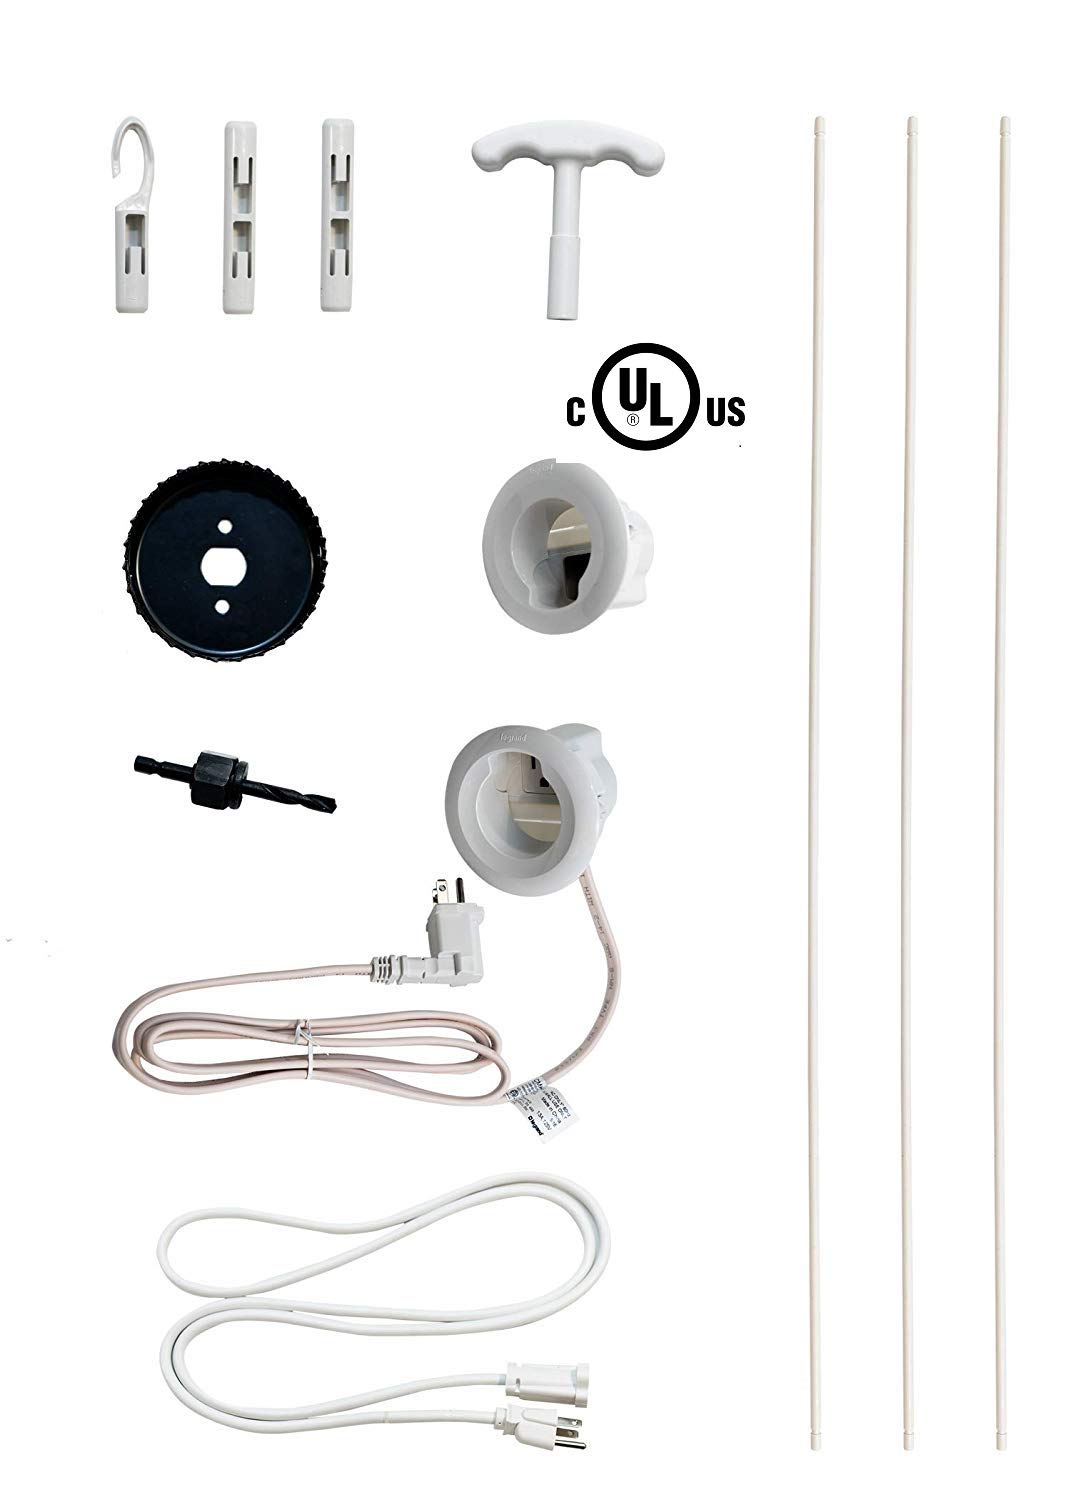 Strange Legrand Wiremold Cmk70 Flat Screen Tv Cord And Cable Power Kit Wiring 101 Louspimsautoservicenl